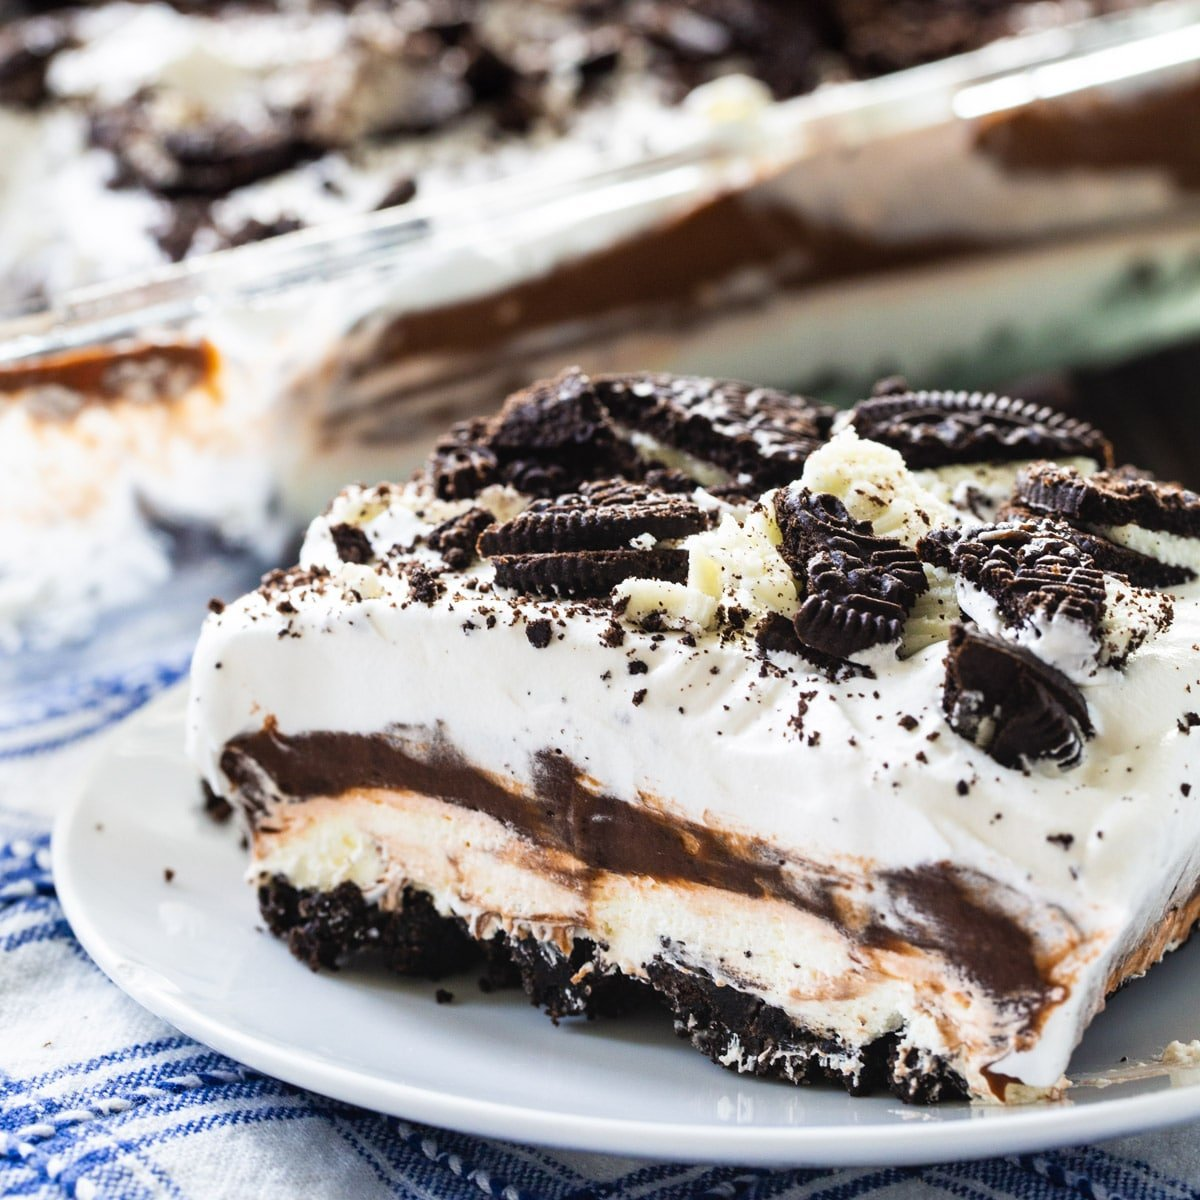 Piece of Oreo Delight on a small white plate.